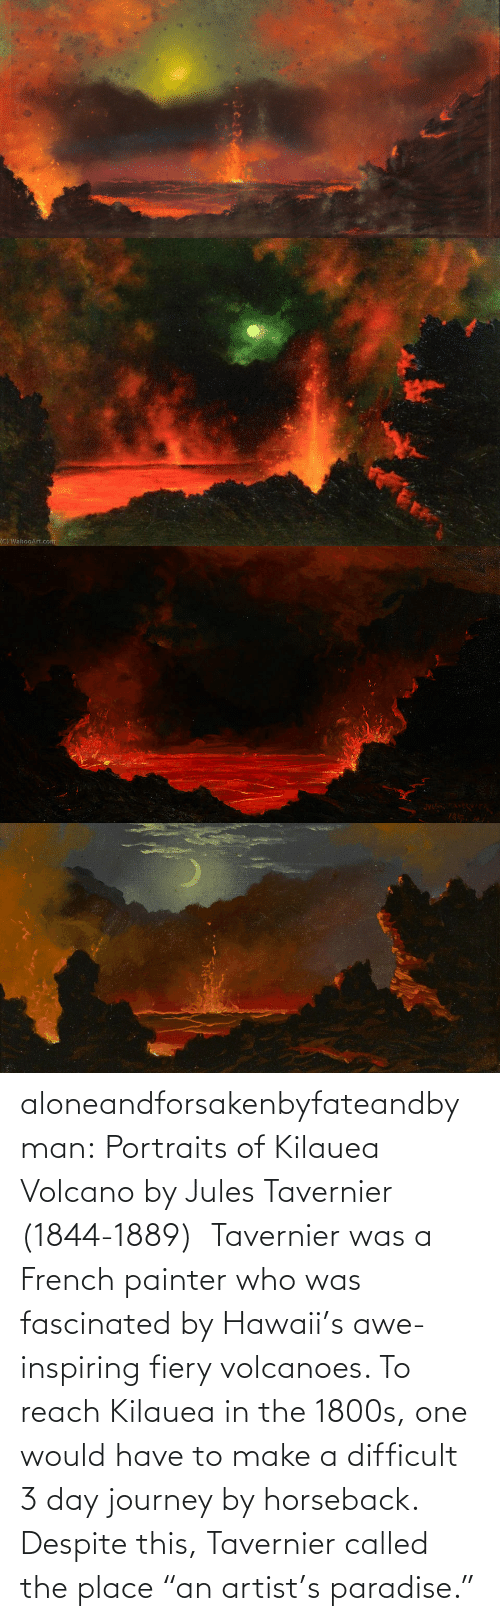 "French: aloneandforsakenbyfateandbyman:  Portraits of Kilauea Volcano by Jules Tavernier (1844-1889)    Tavernier was a French painter who was fascinated by Hawaii's awe-inspiring fiery volcanoes. To reach Kilauea in the 1800s, one would have to make a difficult 3 day journey by horseback. Despite this, Tavernier called the place ""an artist's paradise."""